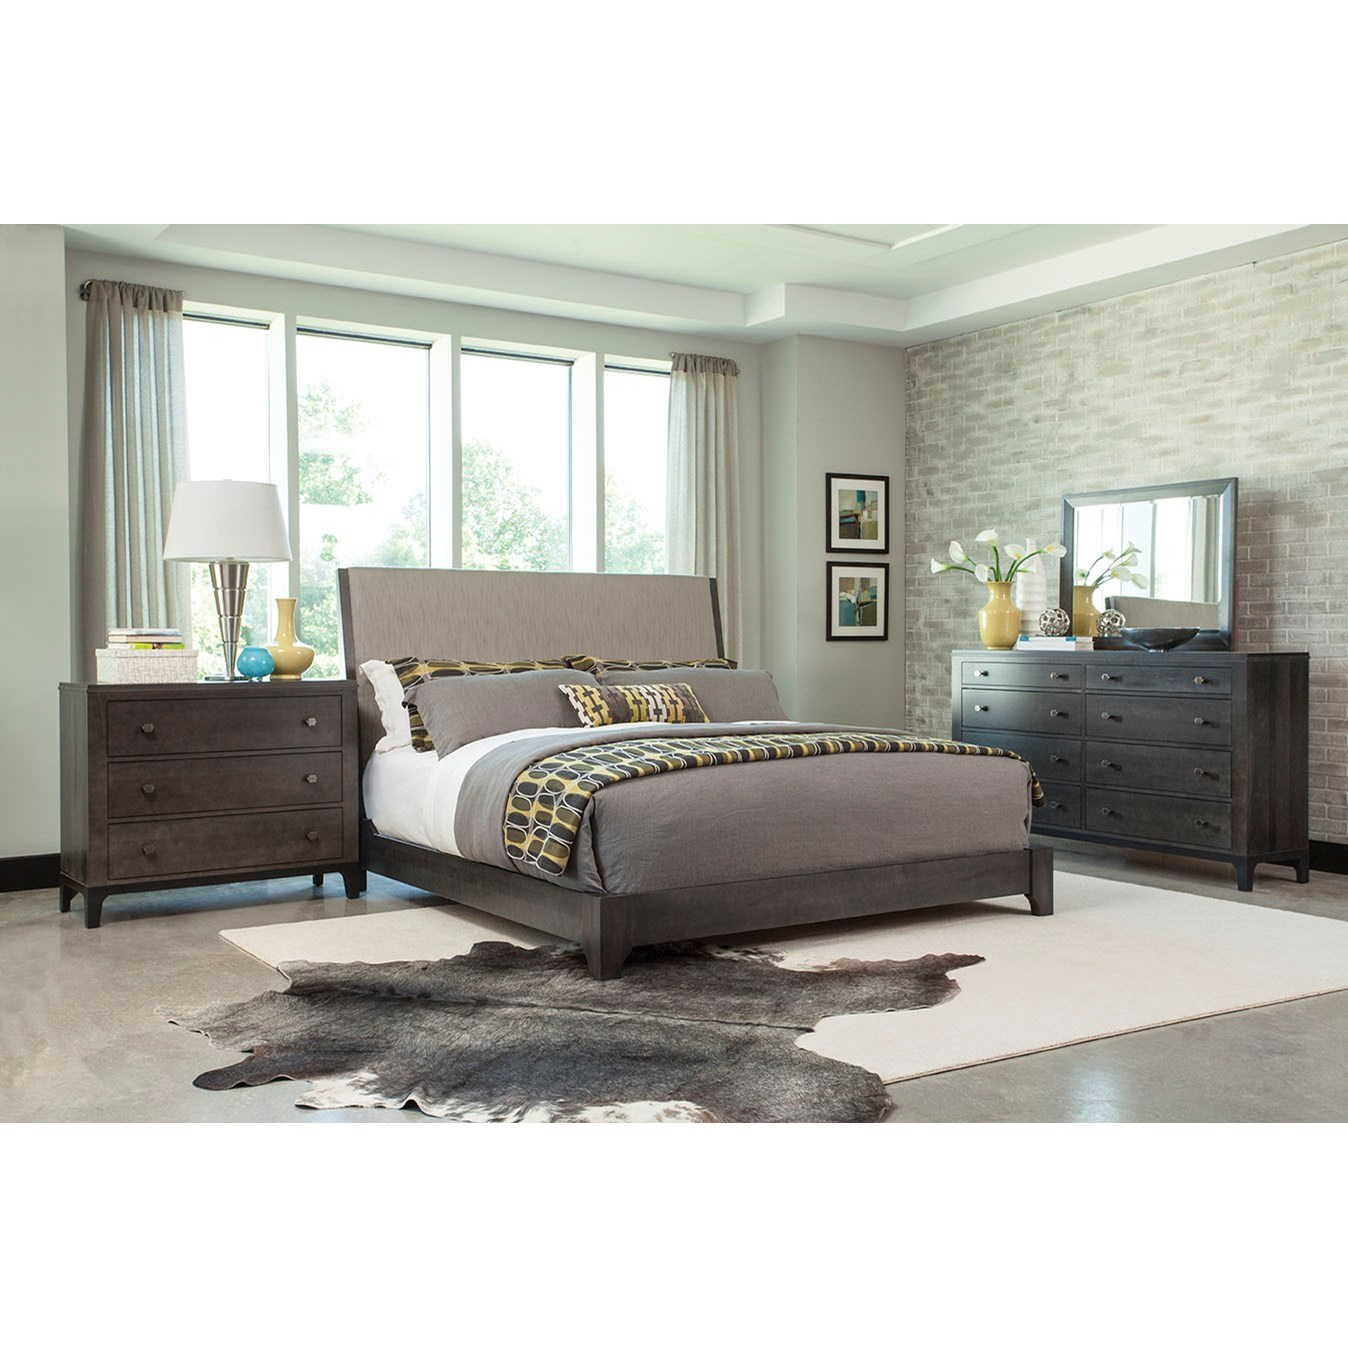 Front Street Queen Bedroom Group by Durham at Stoney Creek Furniture